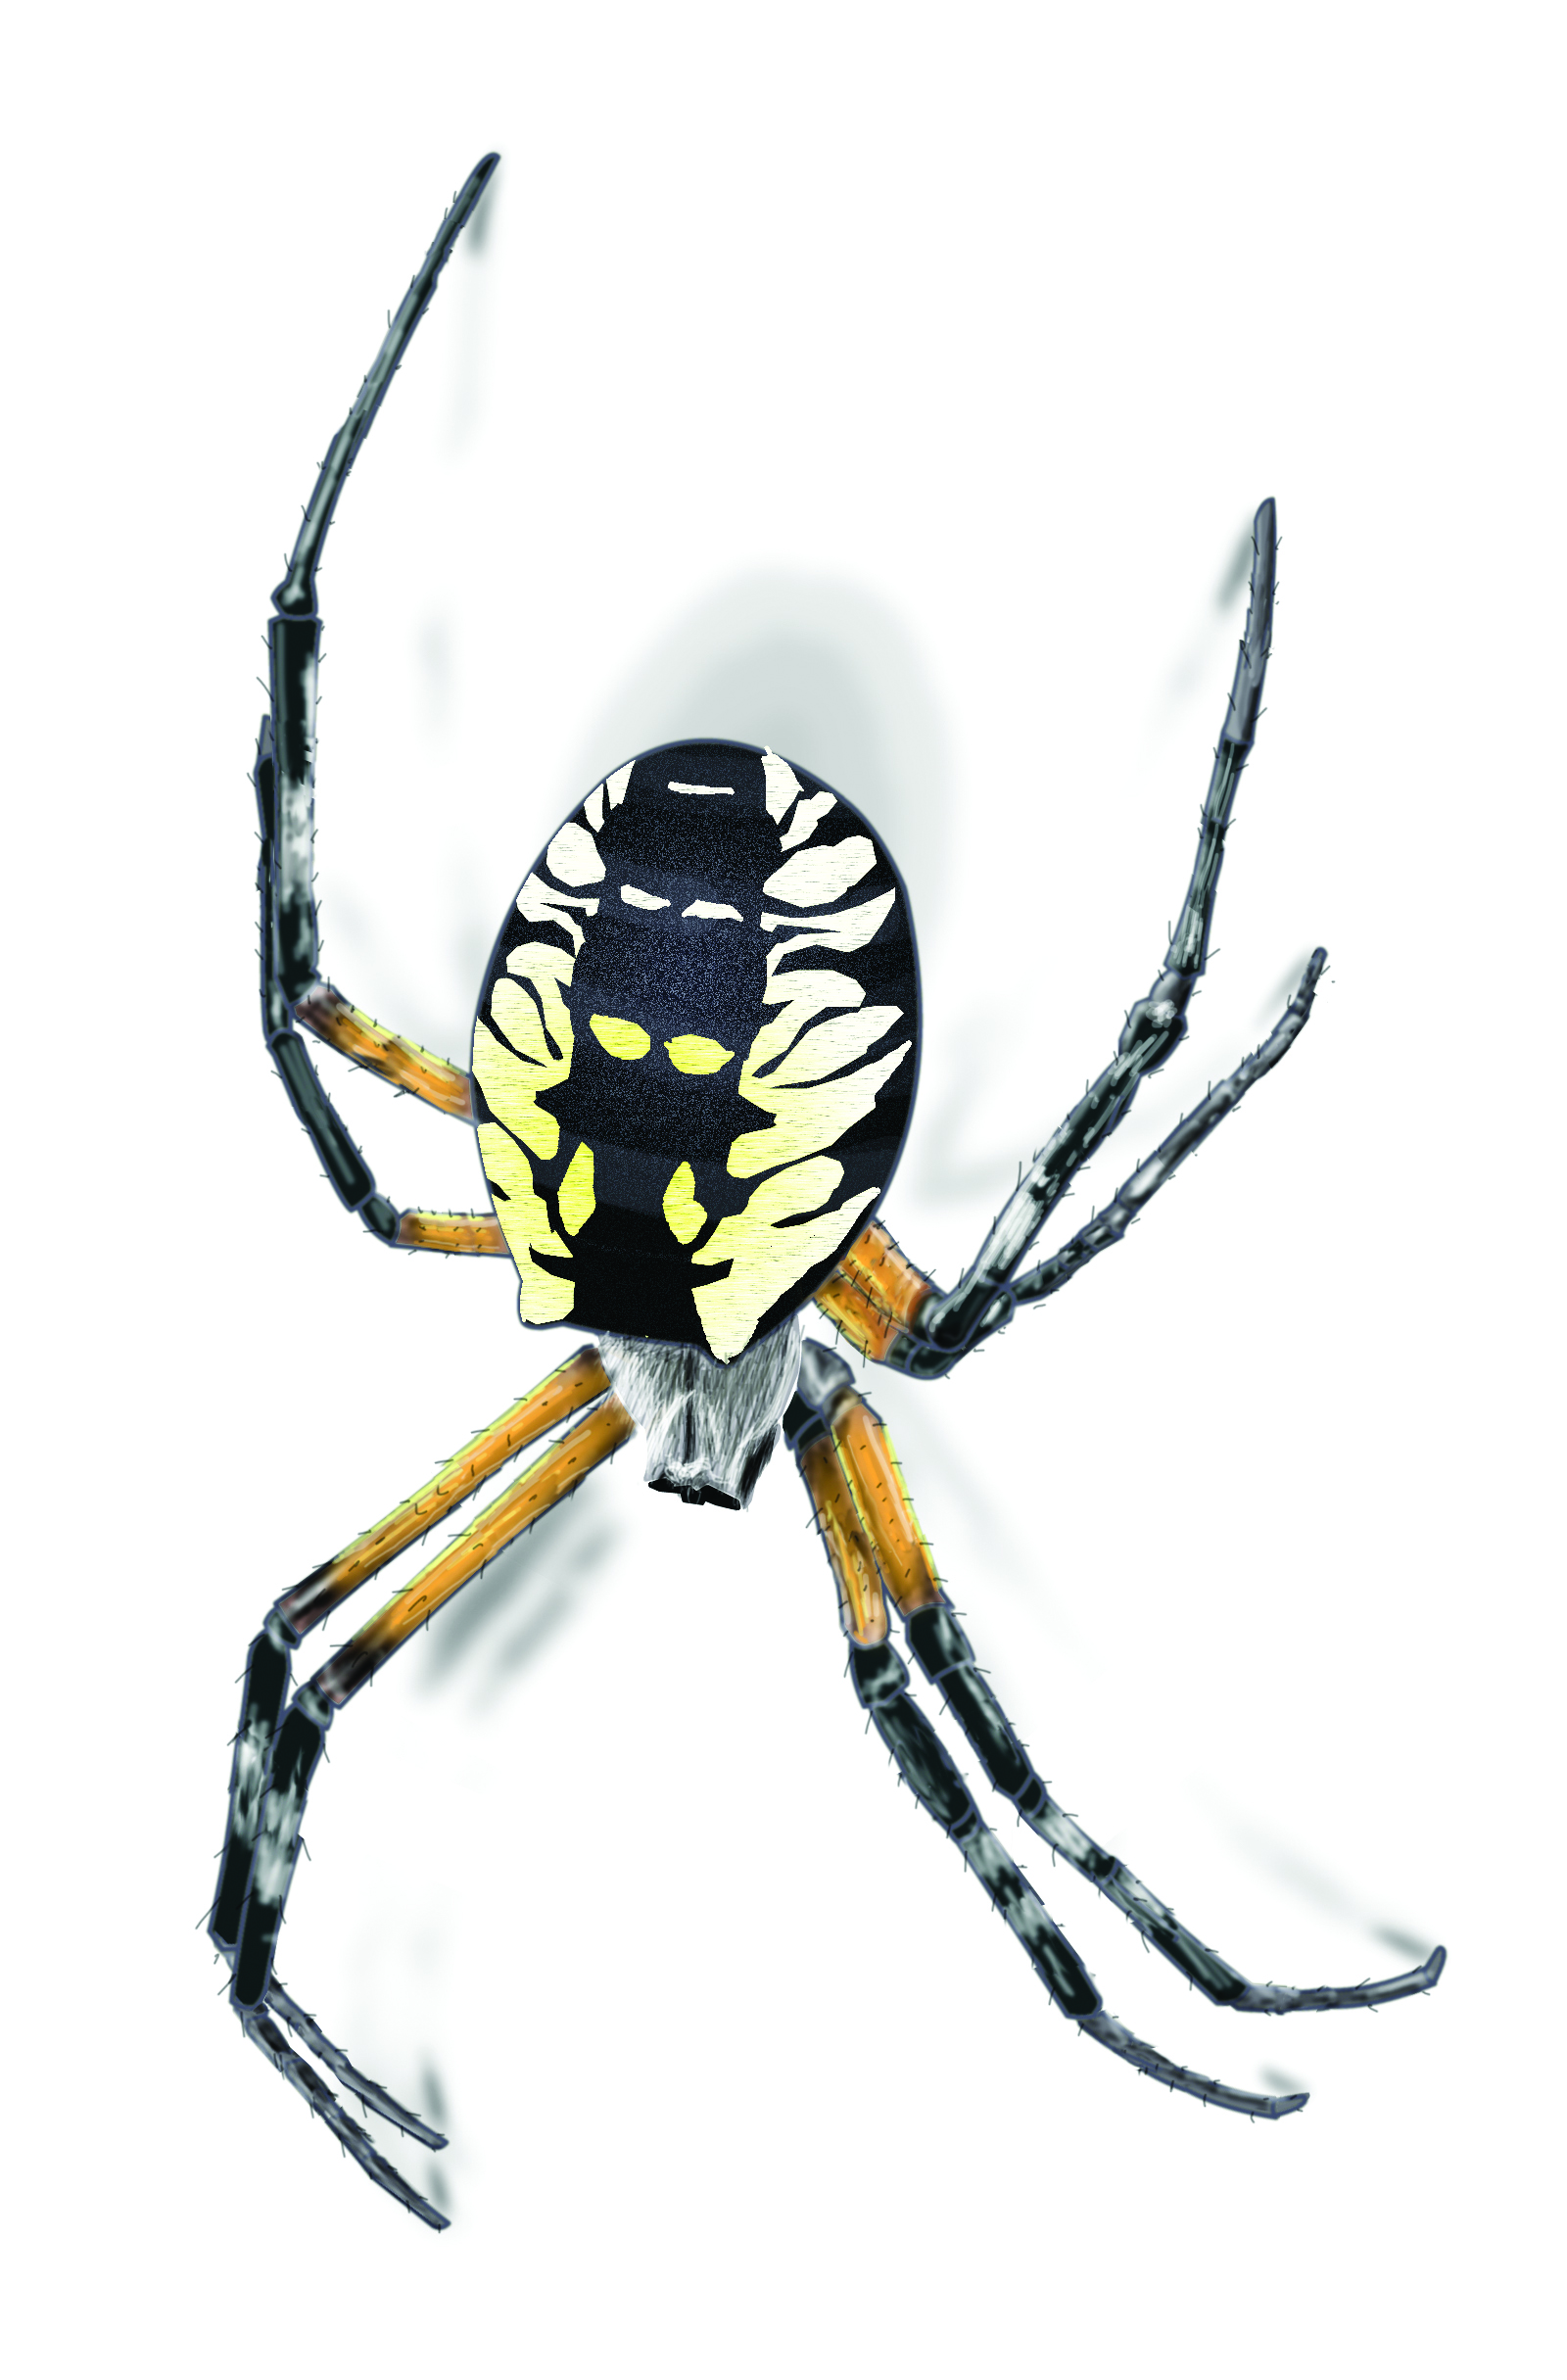 Dark Garden Spiders Garden Spider Facts Get Rid Garden Spiders Do House Spiders Poop Ok Google Do Spiders Poop houzz-03 Do Spiders Poop